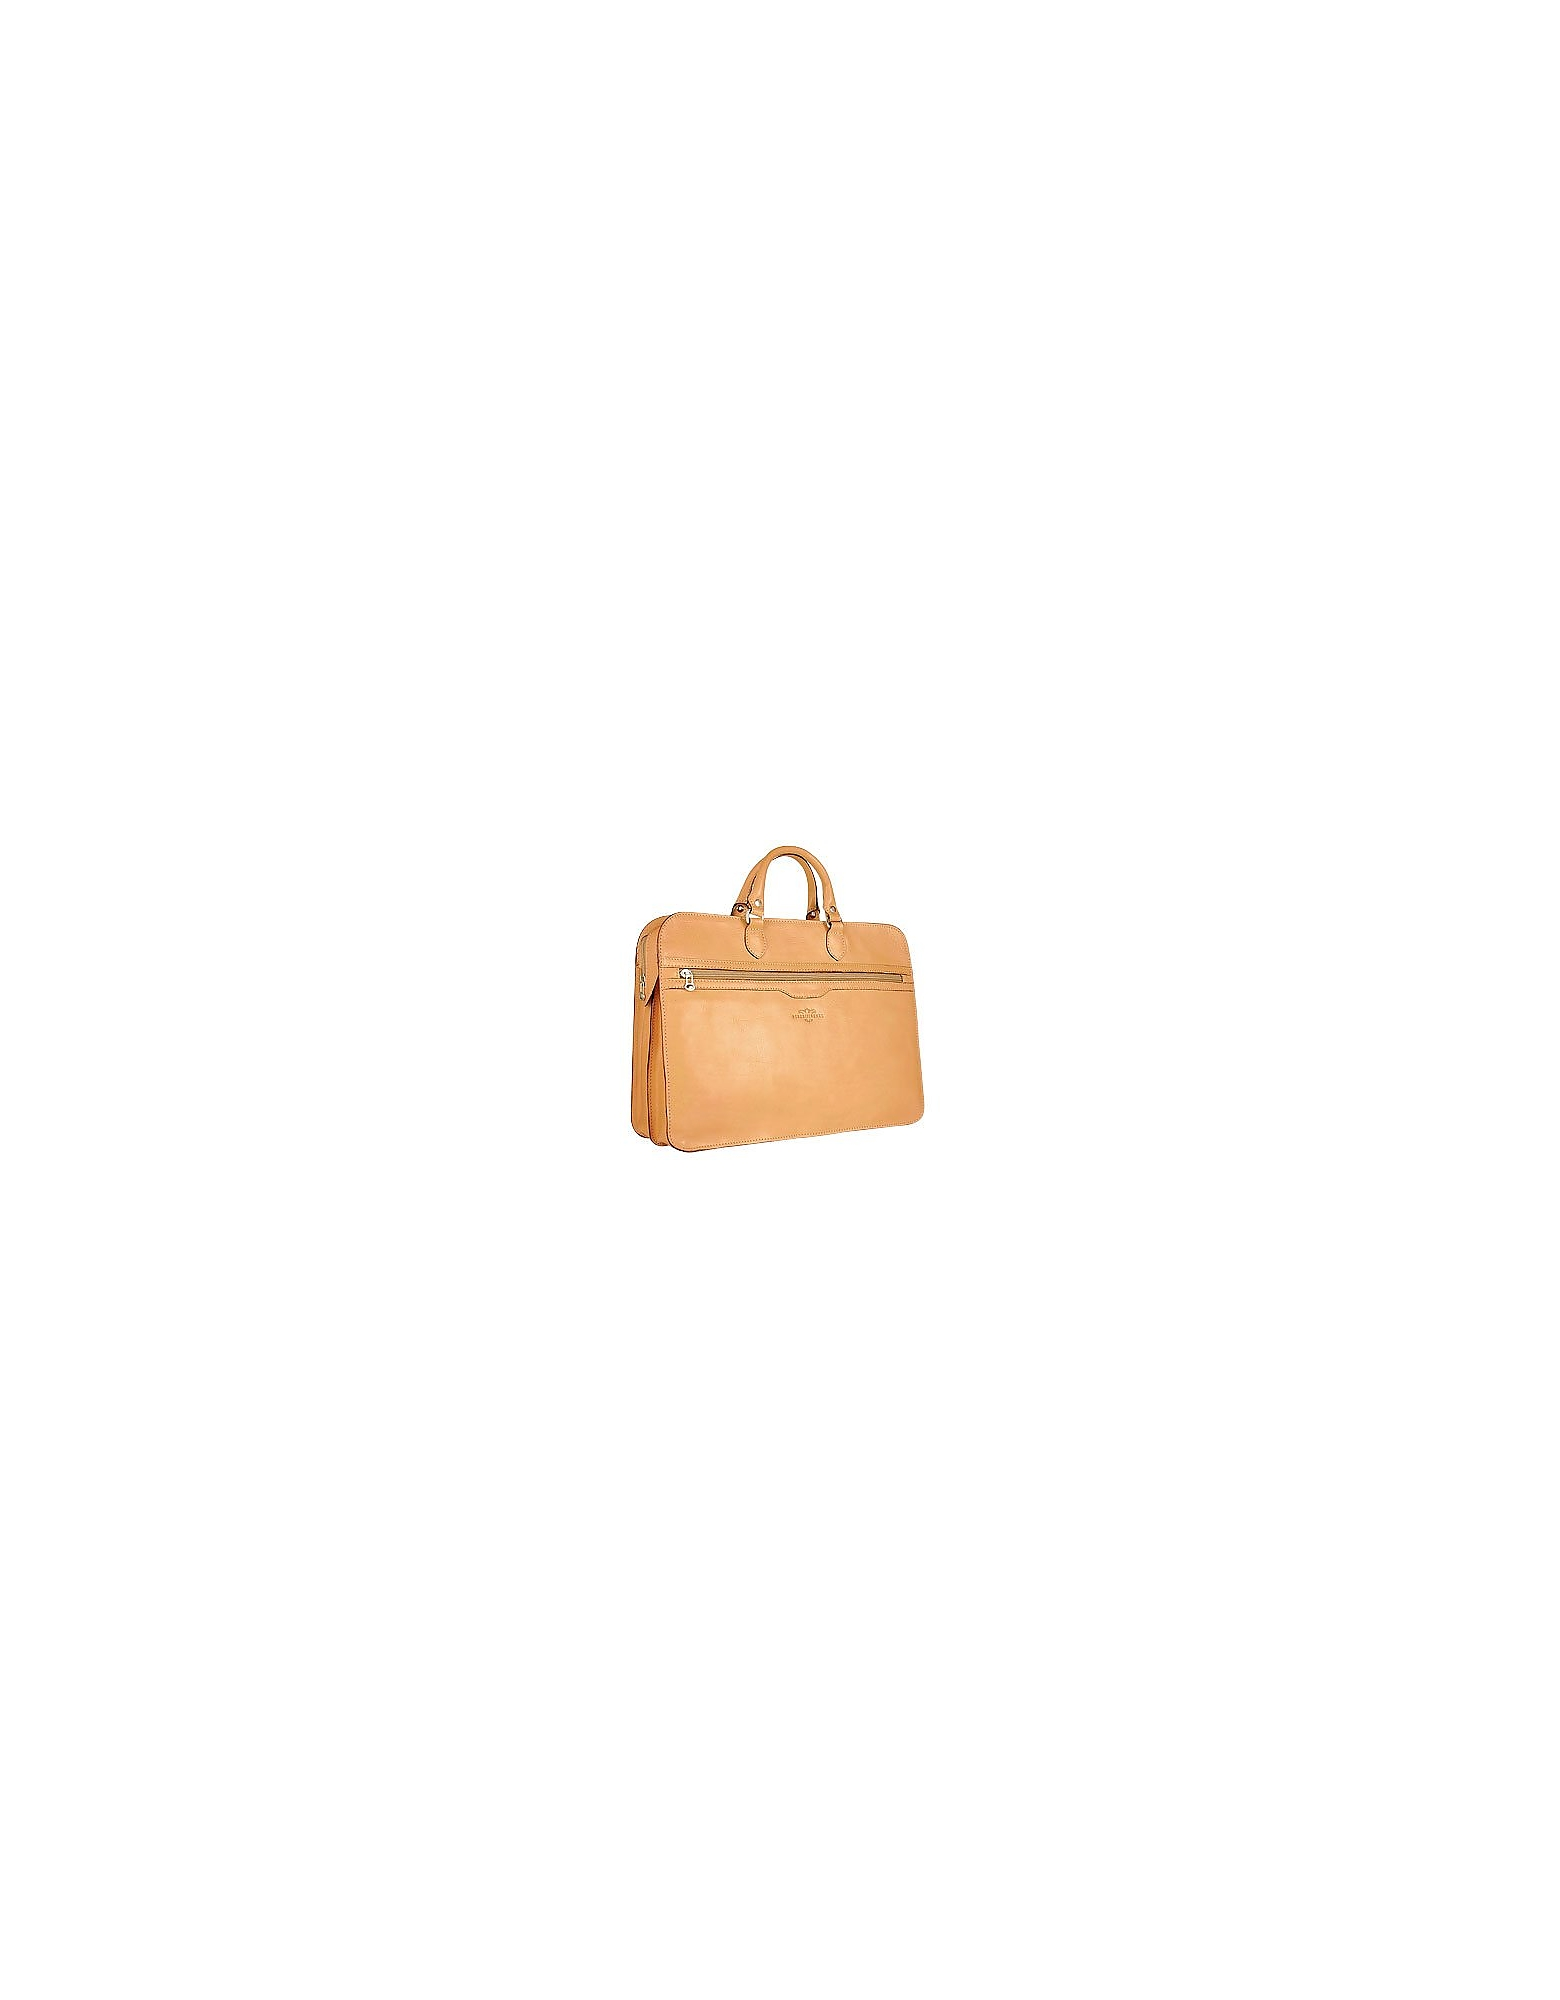 Robe di Firenze Designer Briefcases,  Women's Sand Double-Gusset Soft Leather Briefcase